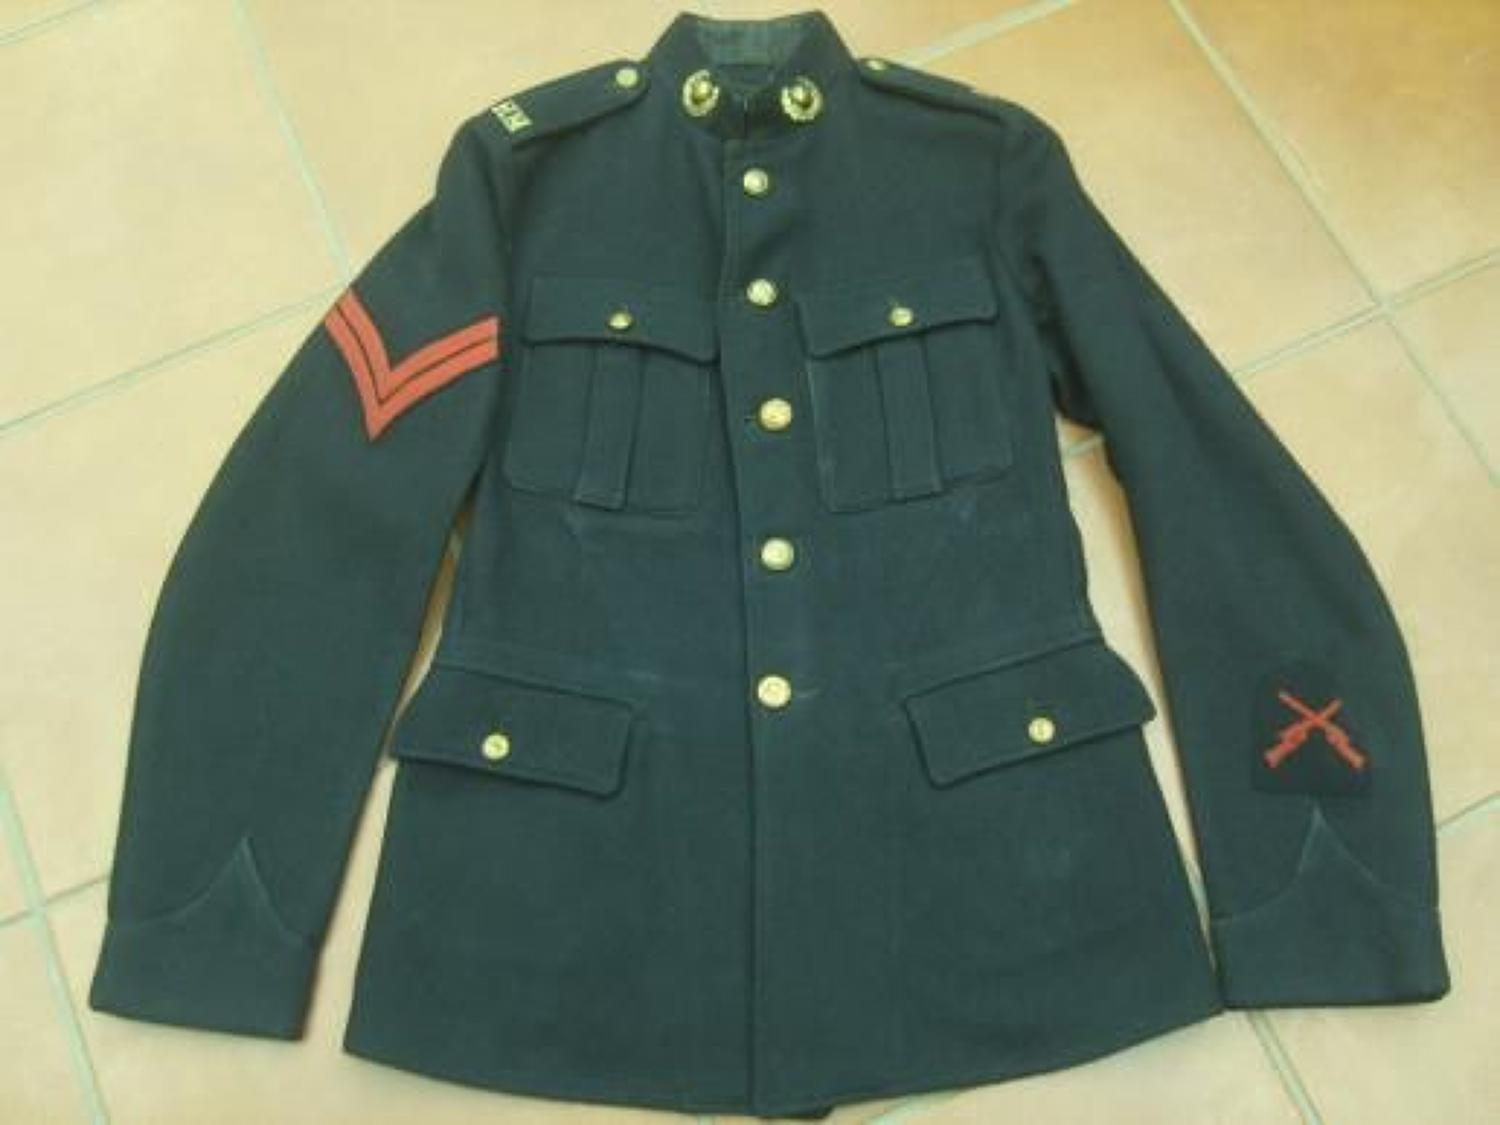 POST WW1 ROYAL MARINE INFANTRY TUNIC